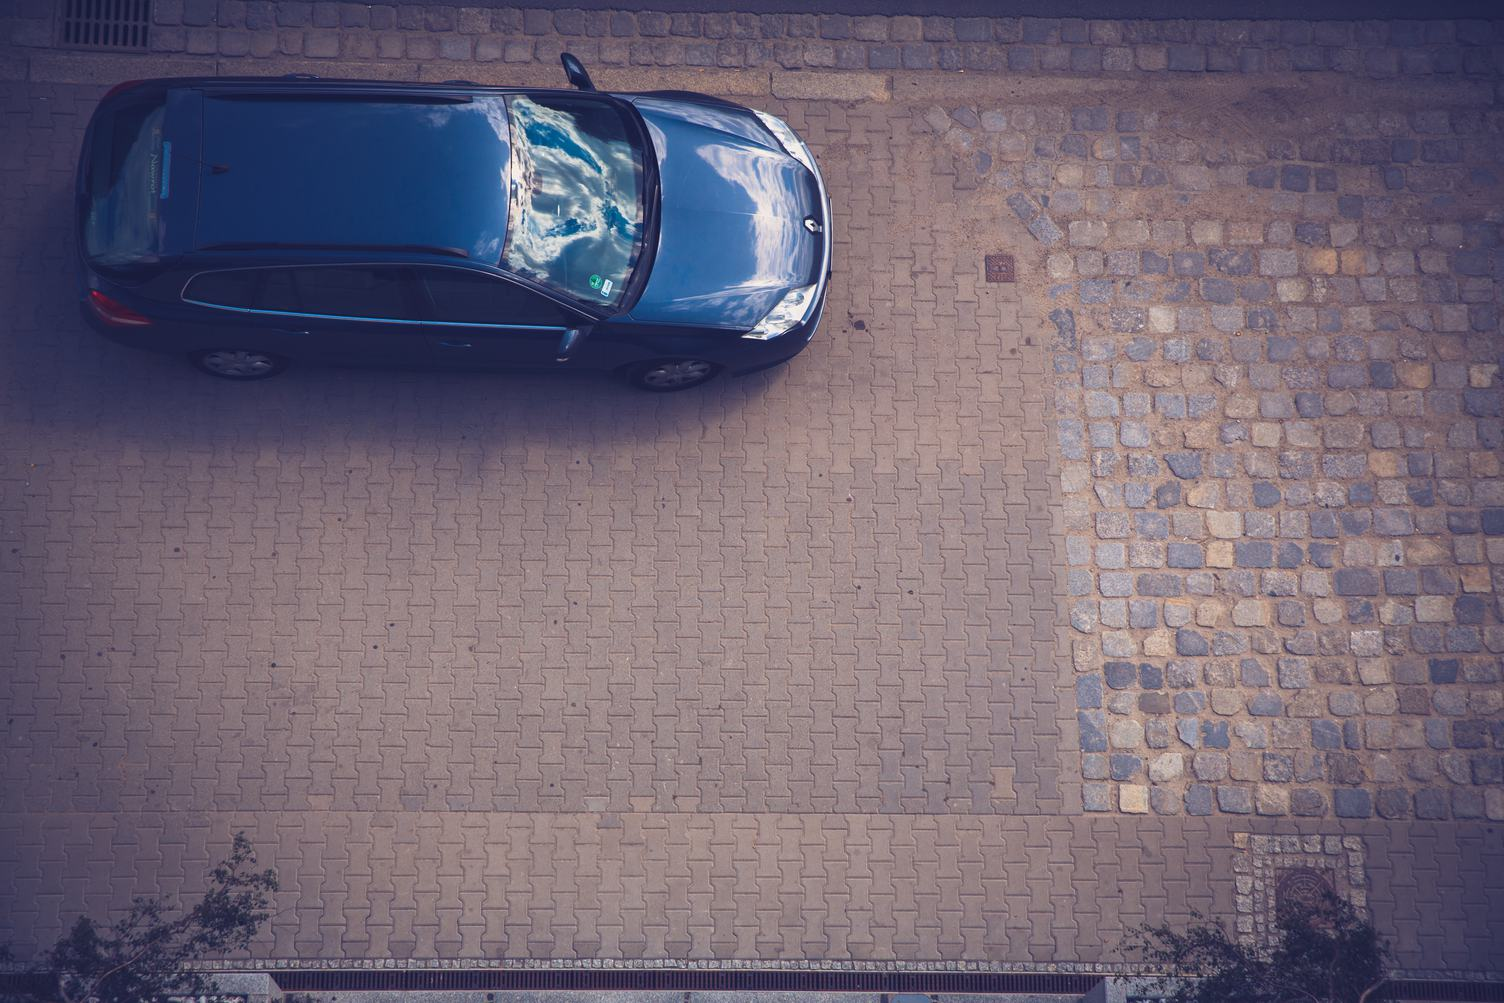 Car Parked on the Sidewalk View from Above